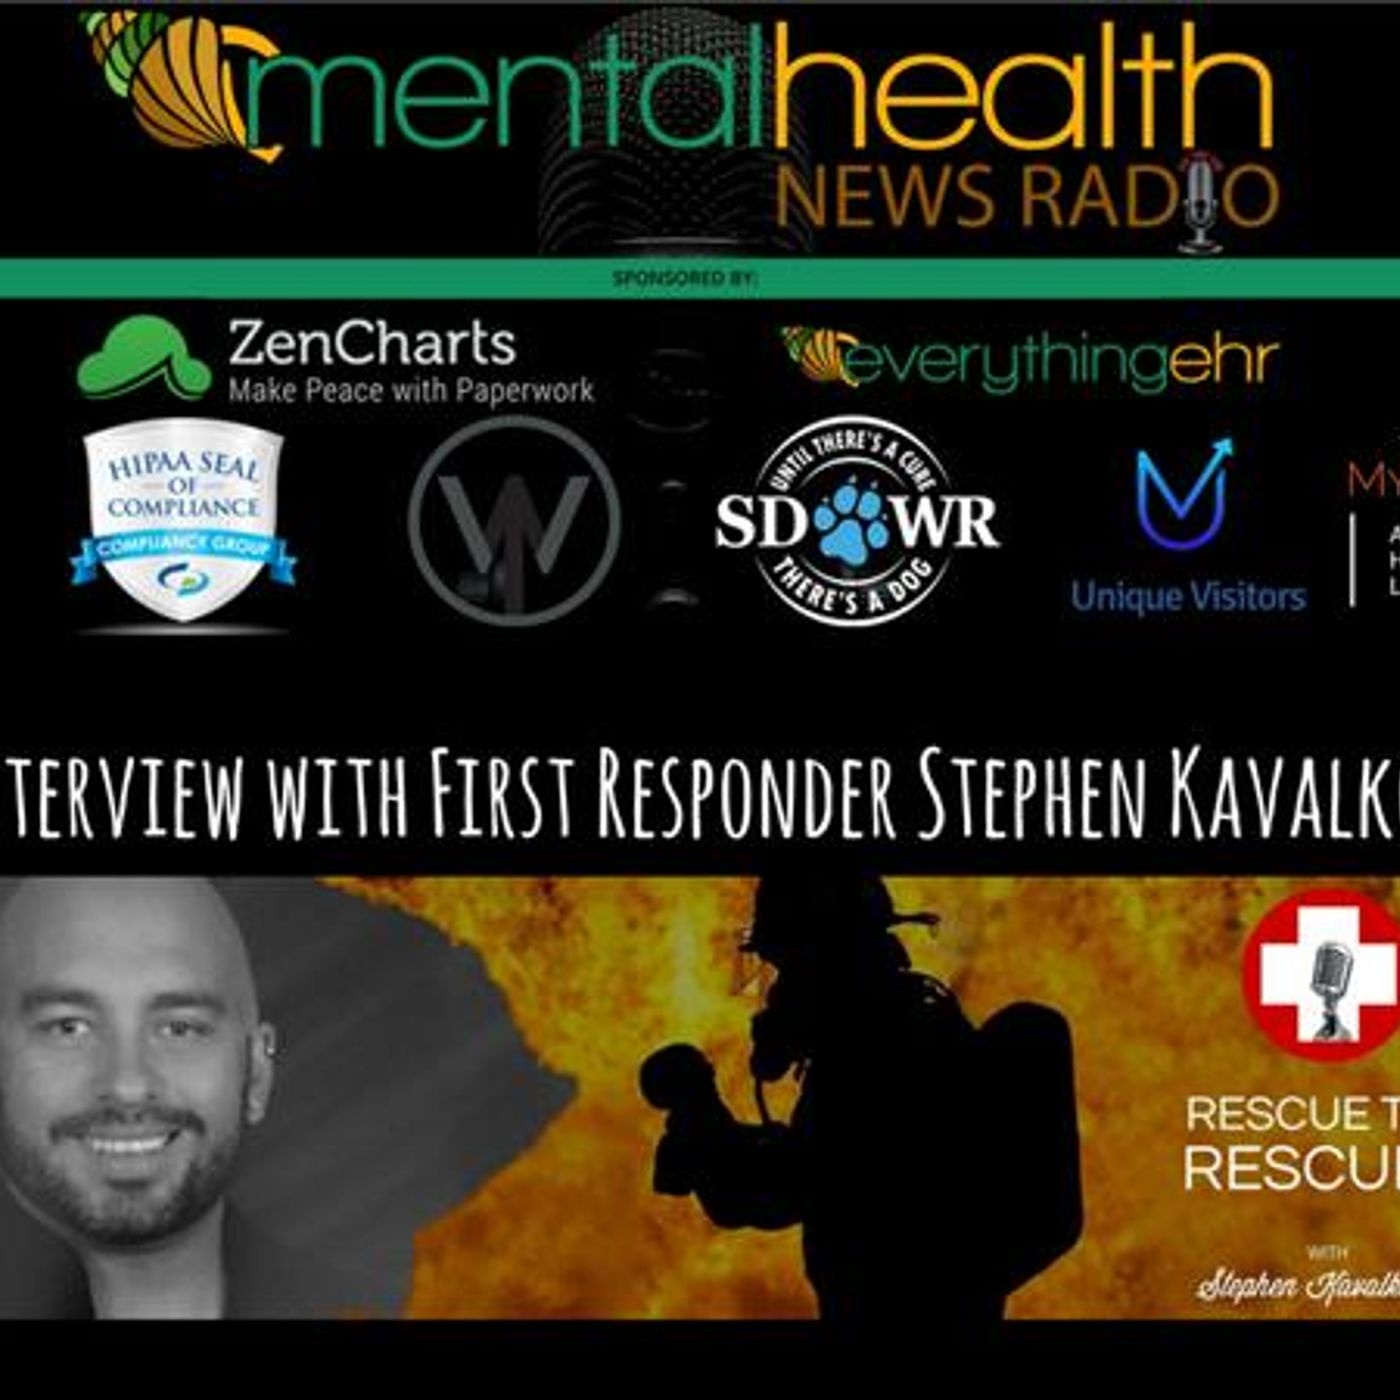 Mental Health News Radio - Rescue the Rescuer: An Interview with First Responder Stephen Kavalkovich